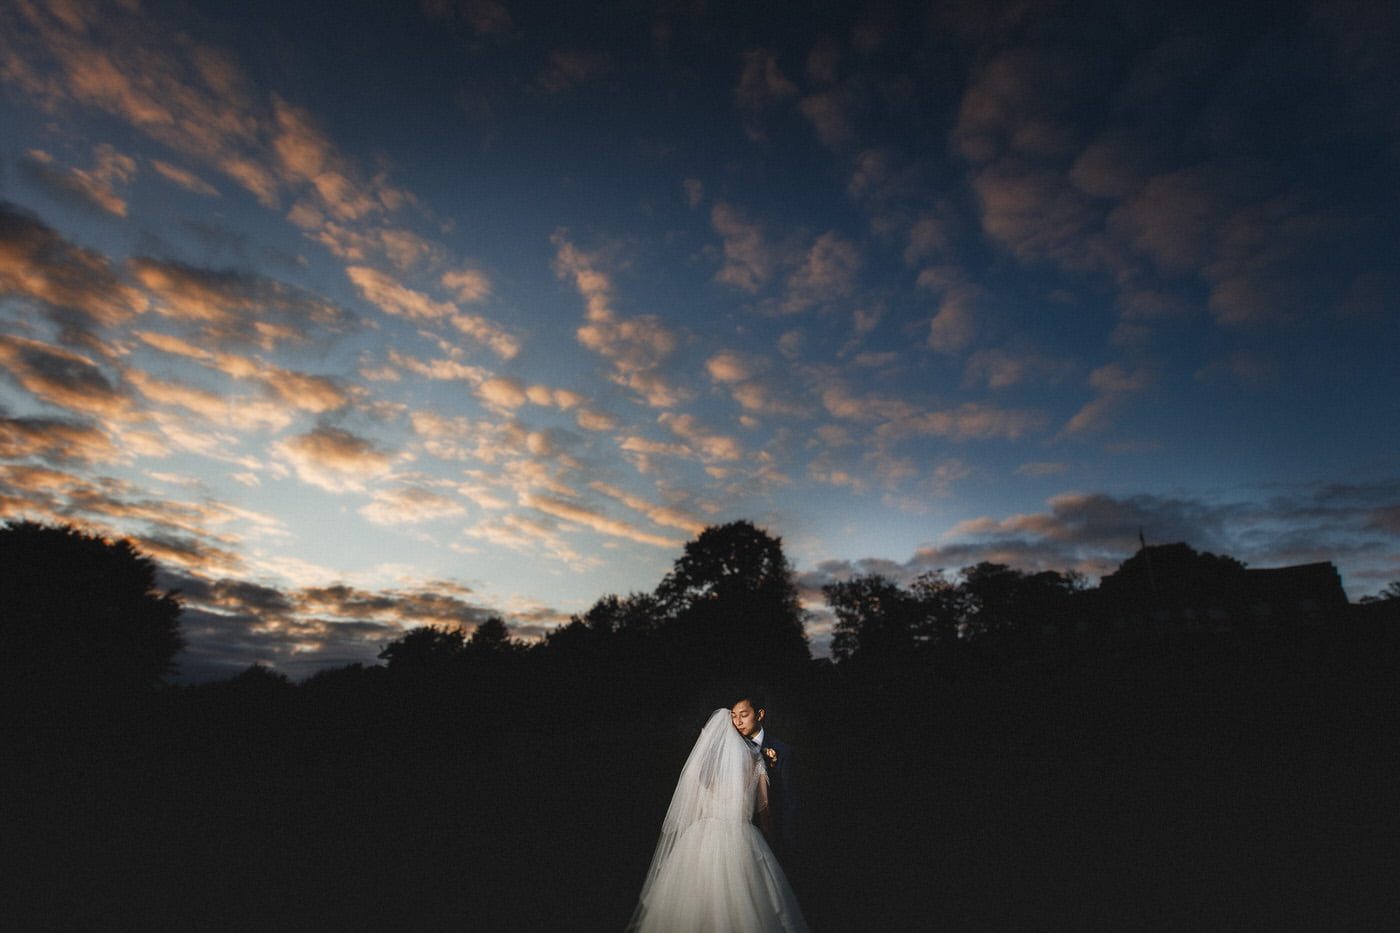 Yorkshire wedding photographer captures image of bride and groom during sunset